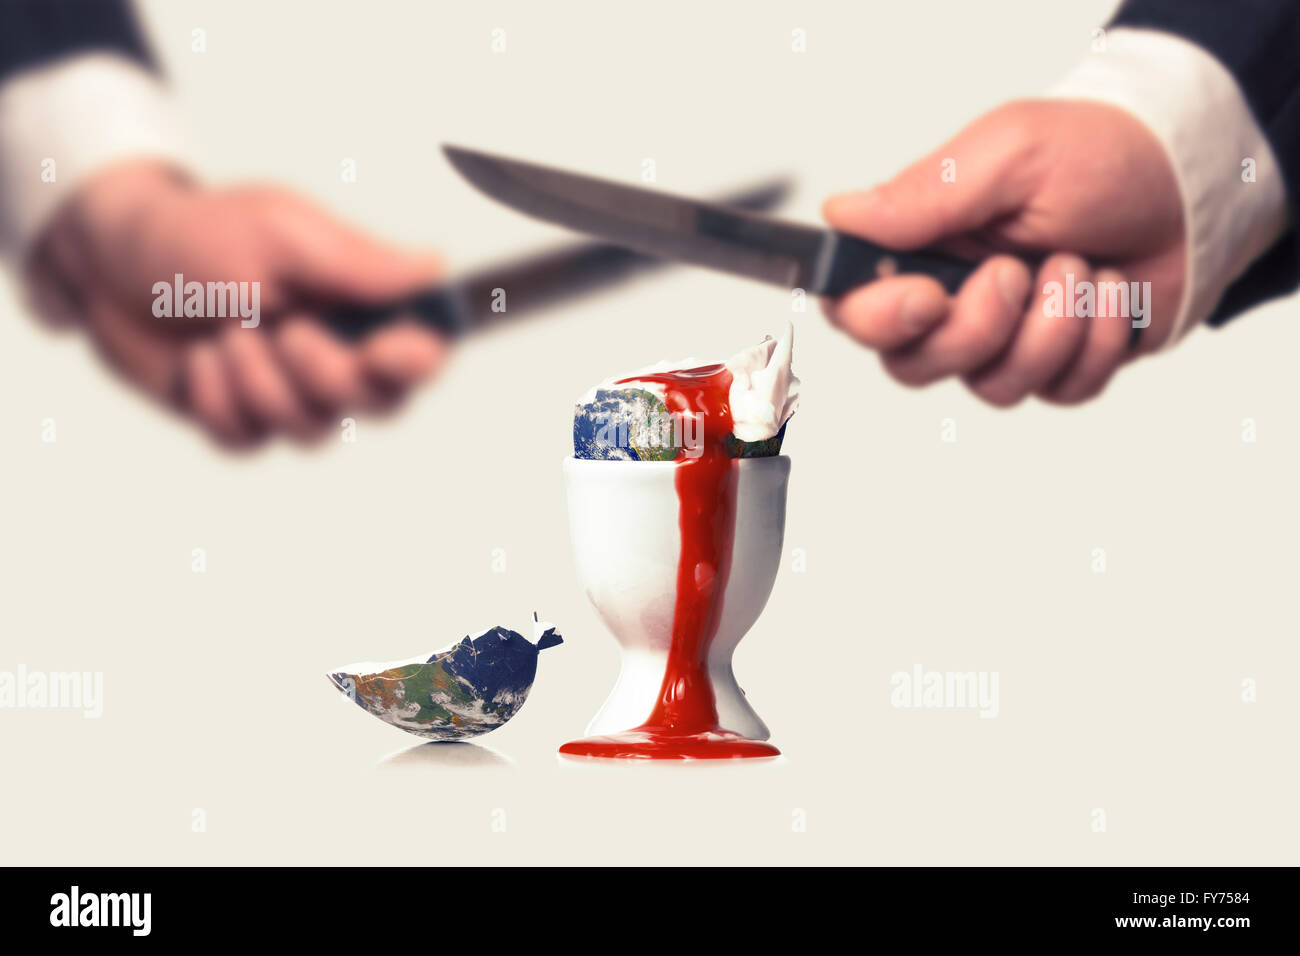 Businessmen destroy the earth with Knifes symbolized by a bleeding egg - Stock Image